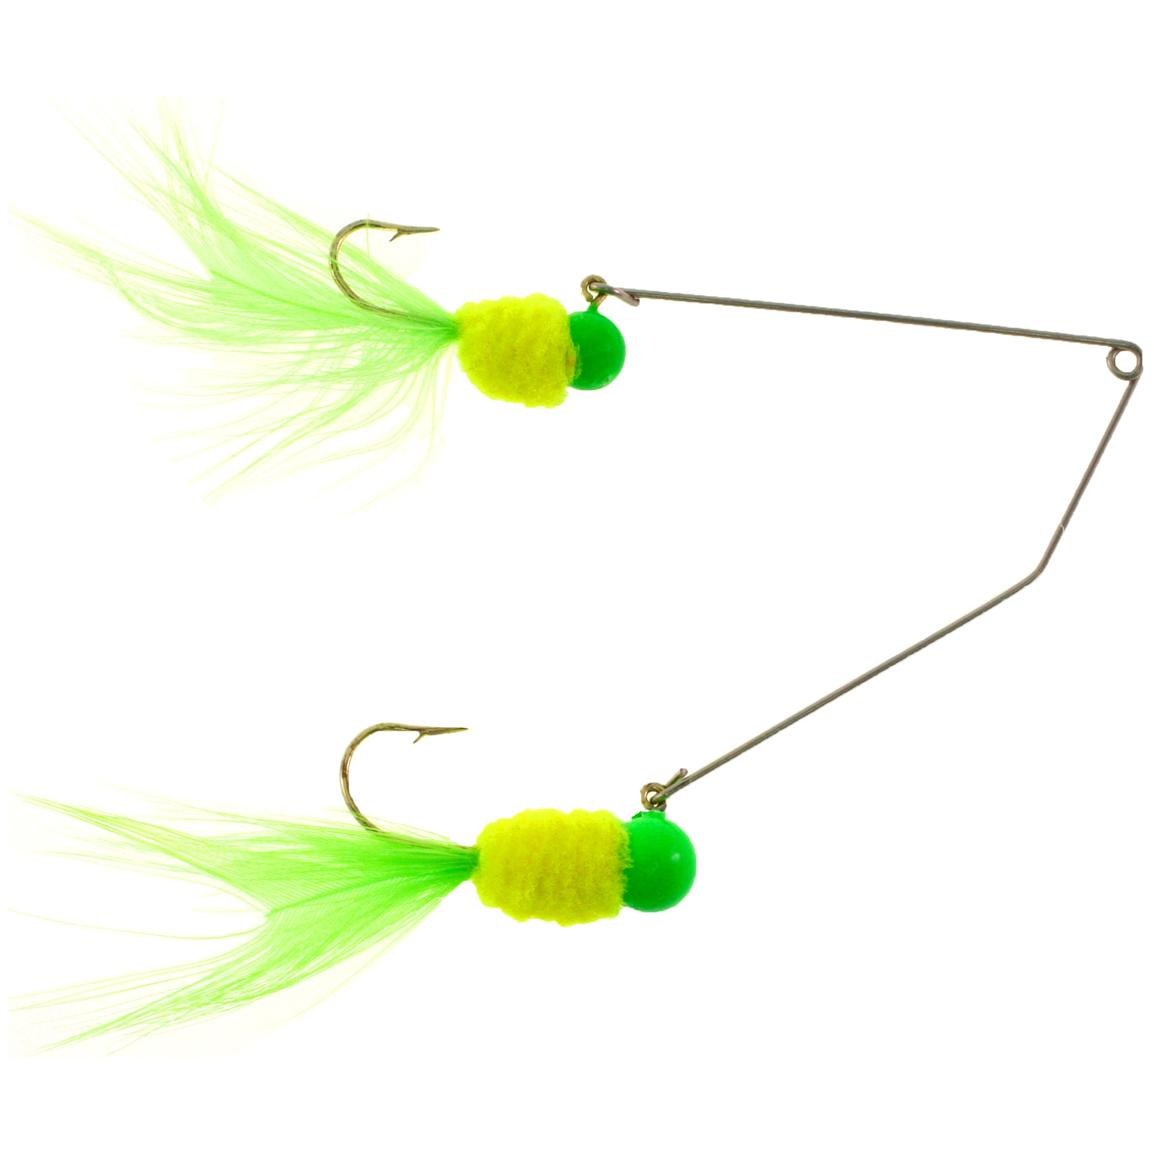 Mr. Crappie® Slab Daddy® Supper Rig, Parrot Head